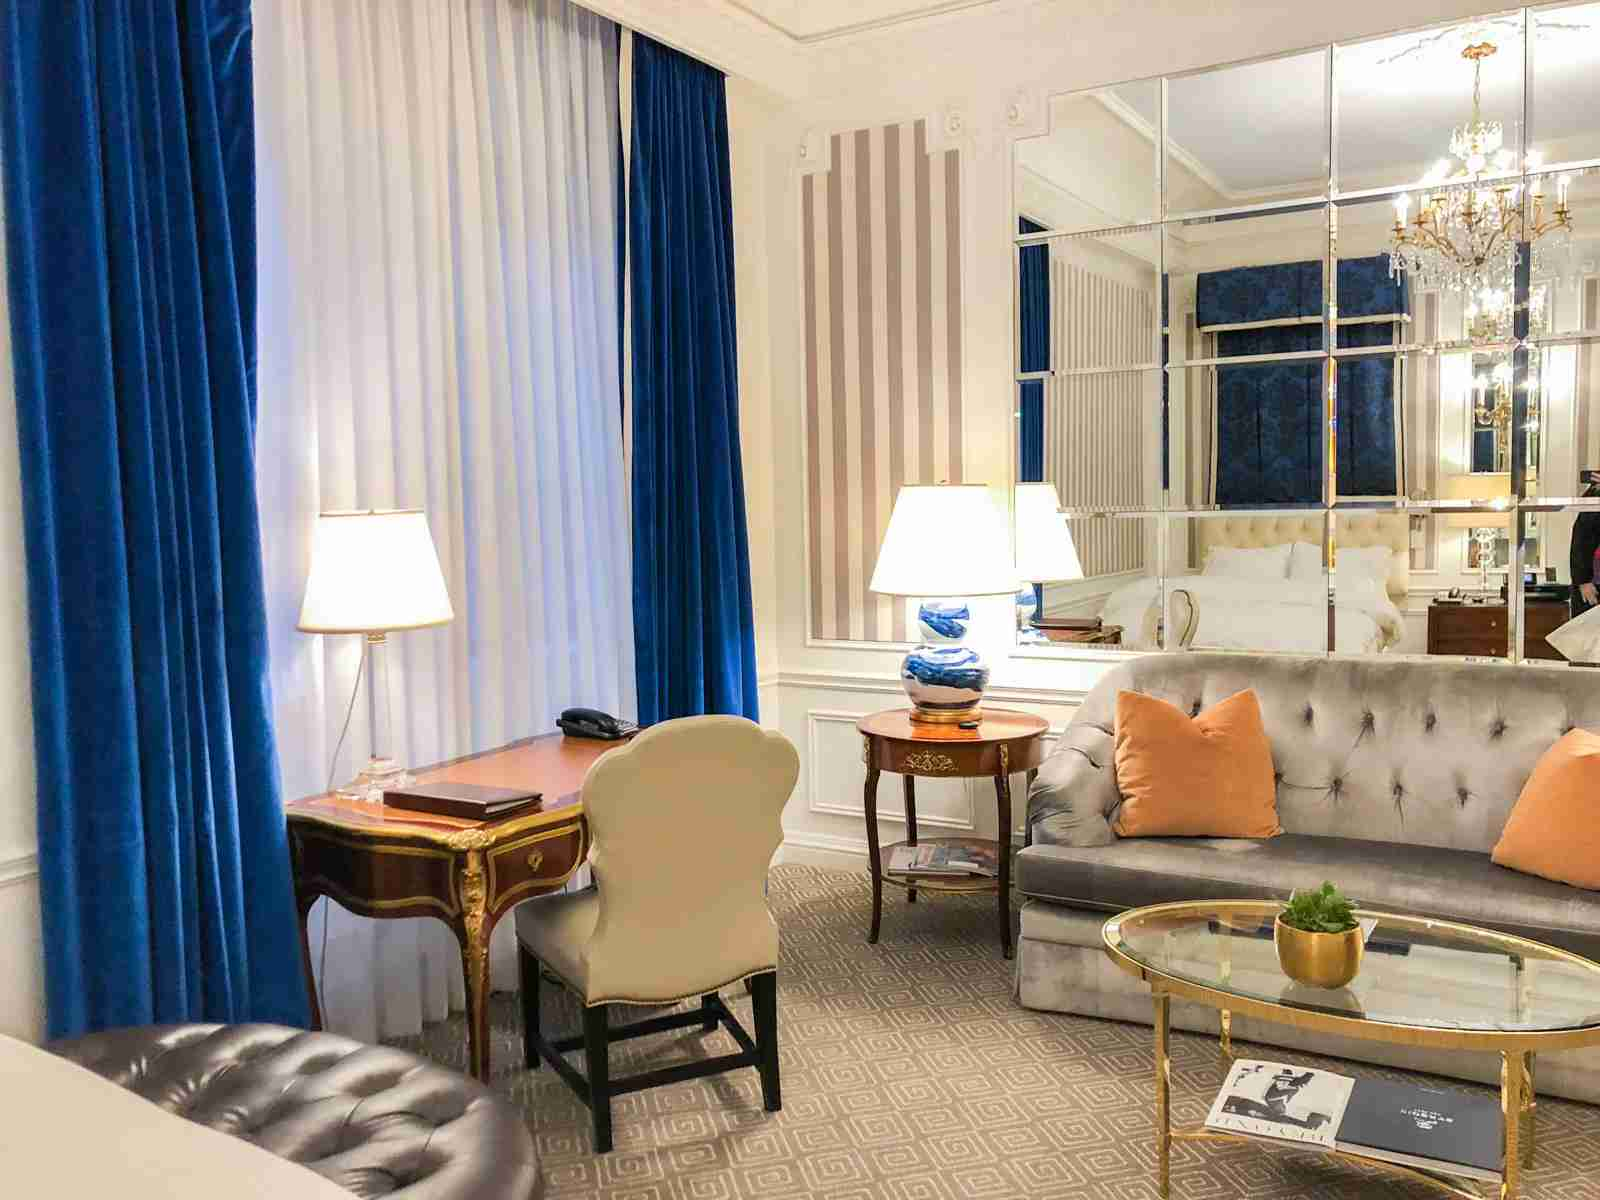 Suite upgrade at the St. Regis New York